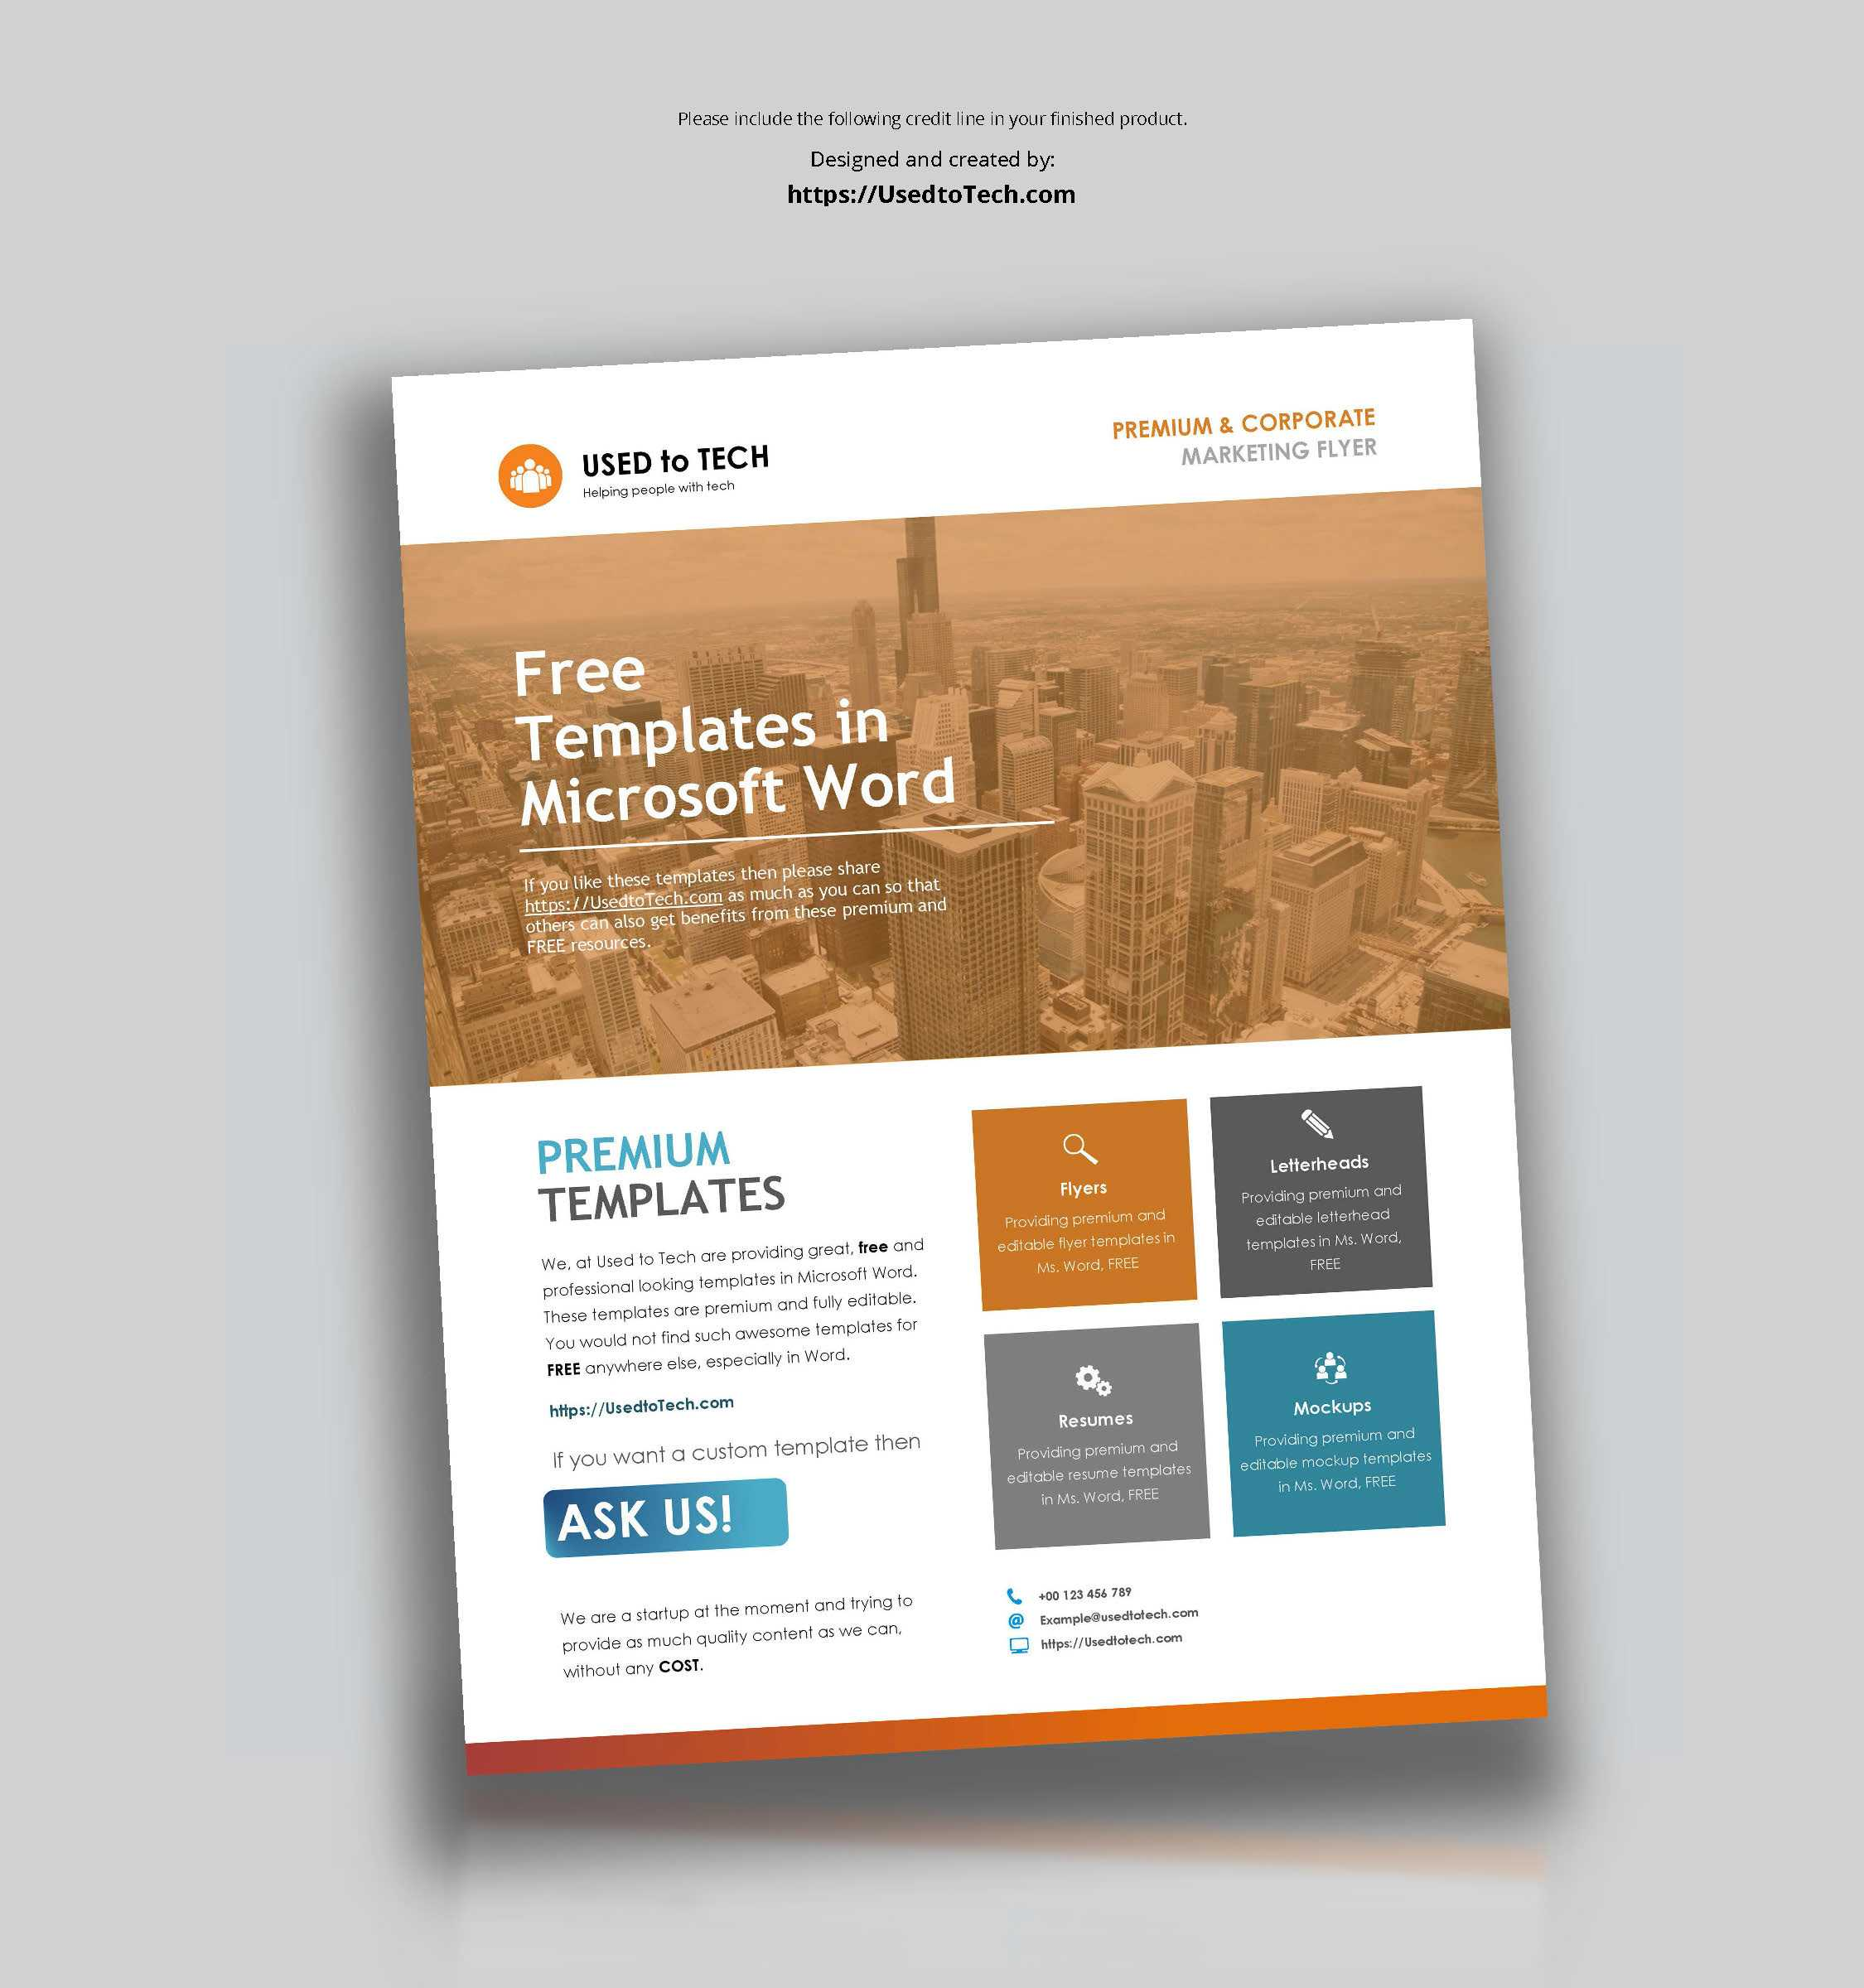 Corporate Flyer Design In Microsoft Word Free - Used To Tech For Free Business Flyer Templates For Microsoft Word